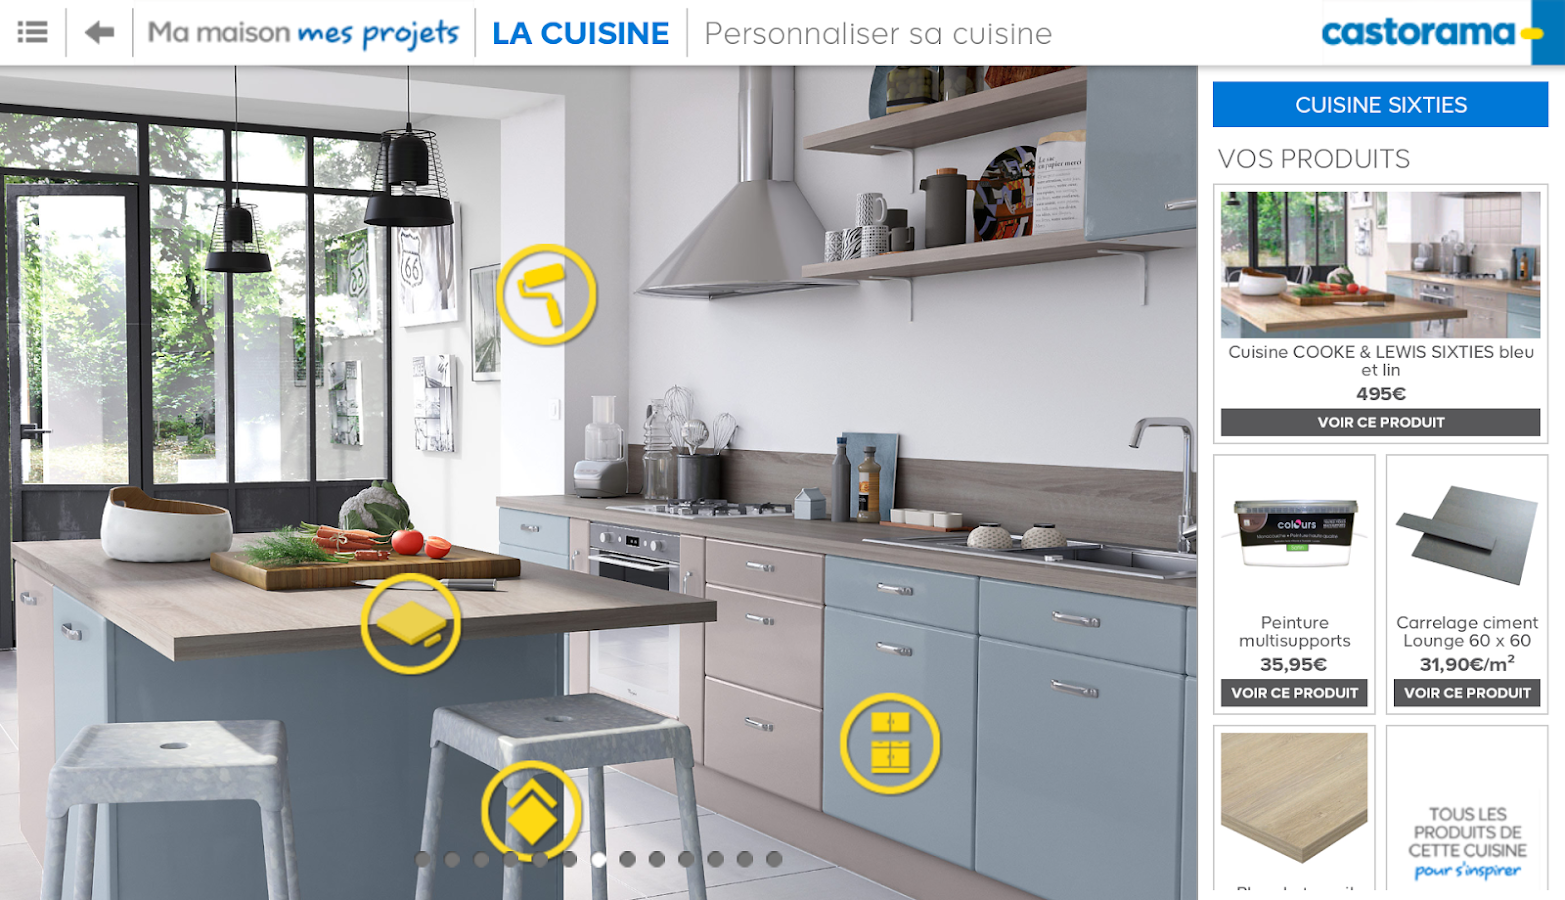 Ma maison mes projets android apps on google play for Maison translation